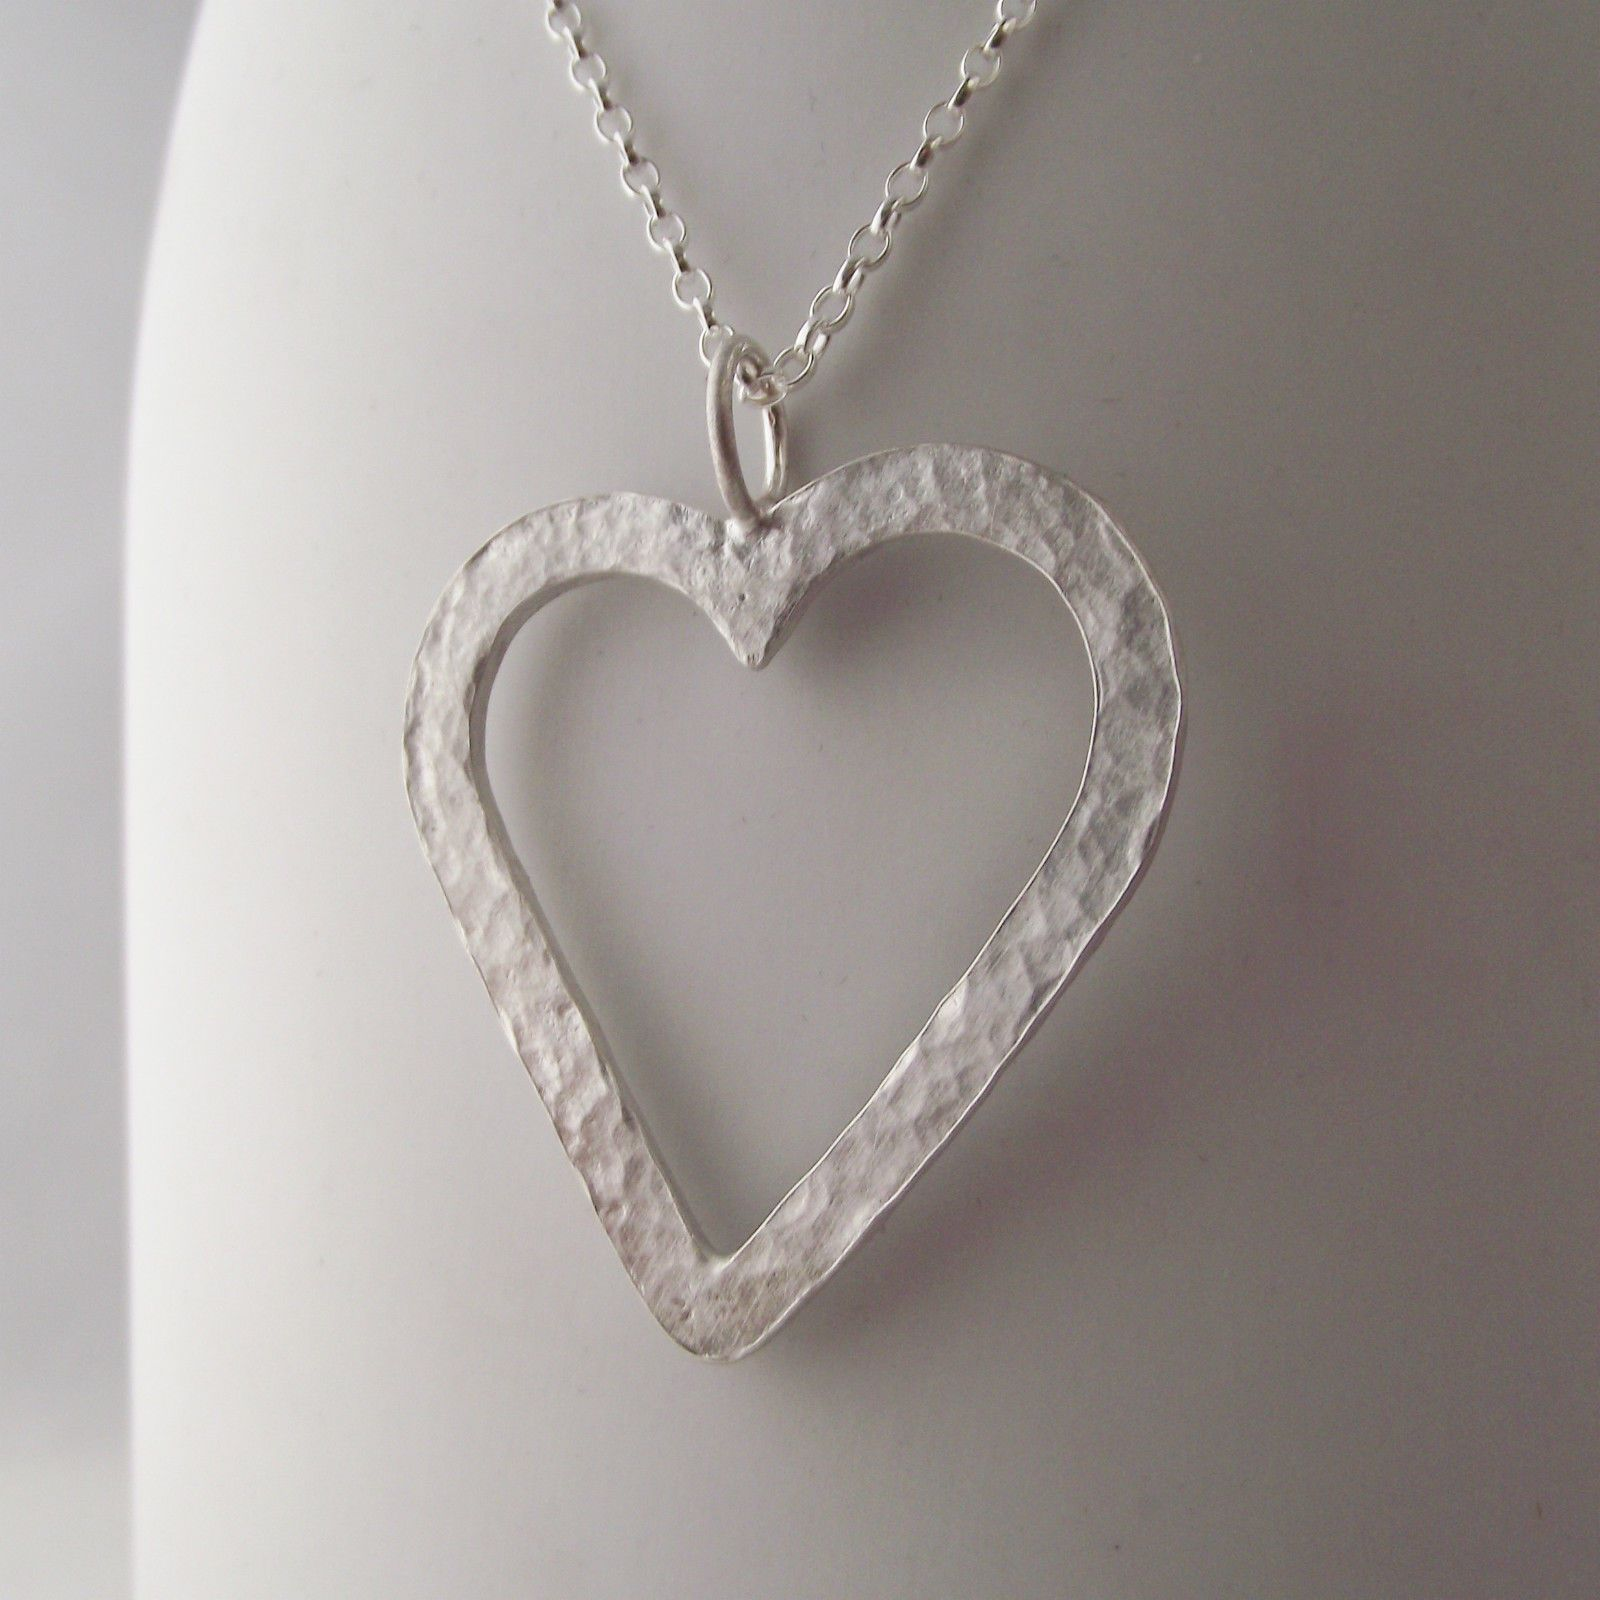 813f1a6a90fc3 Stunning Necklace Handmade Sterling Silver Hammer Finish Large Heart ...